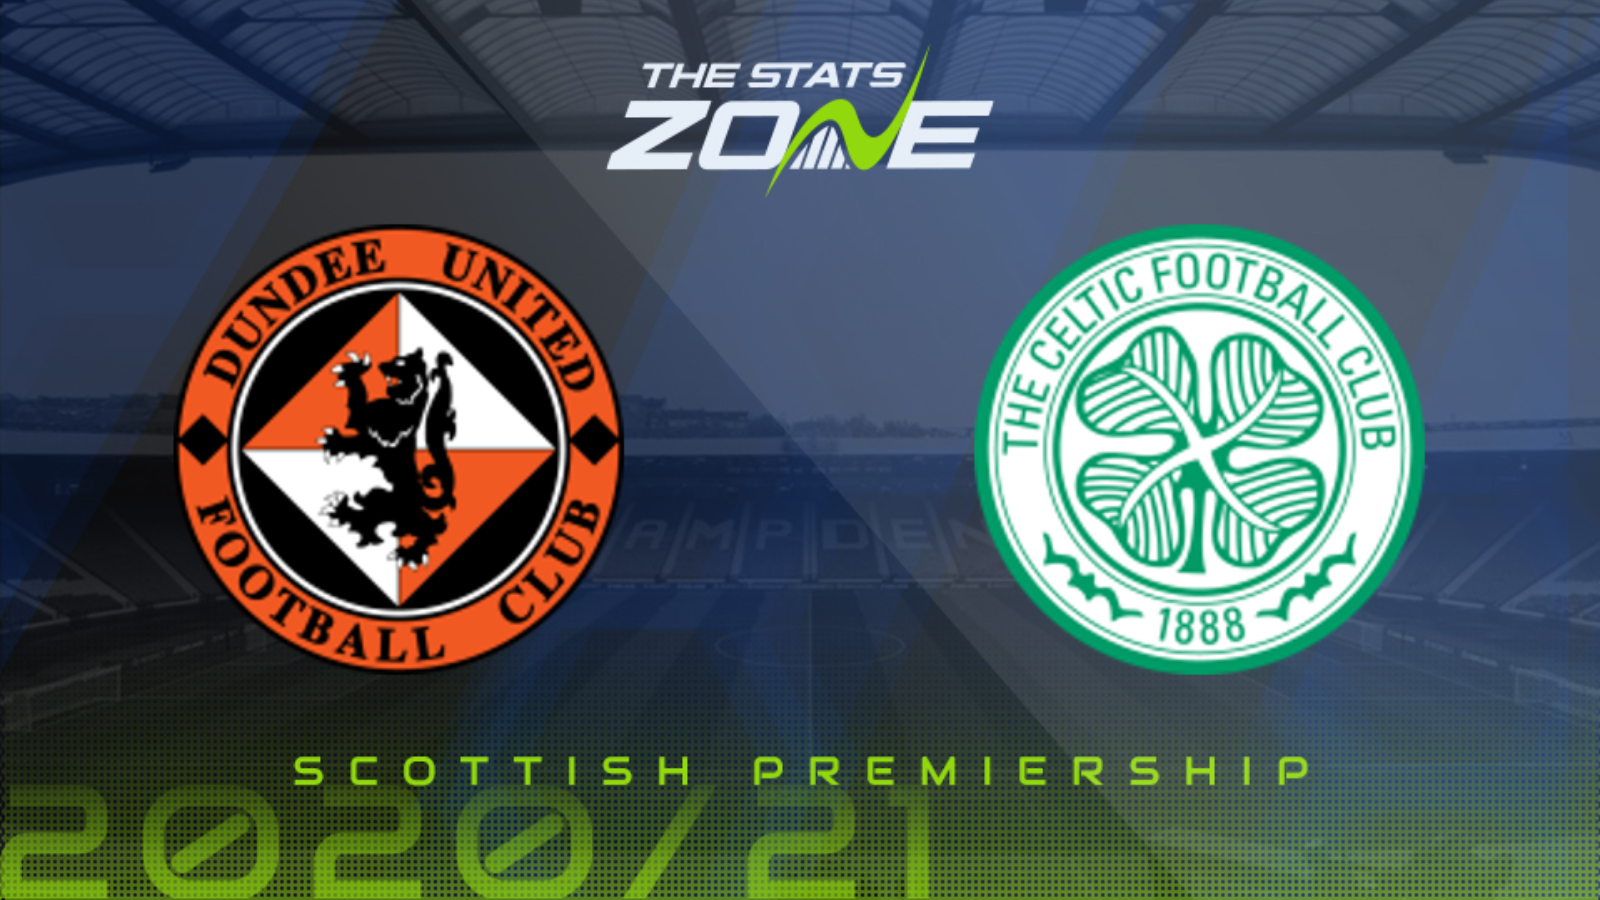 Dundee united vs celtic betting previews ice hockey betting picks